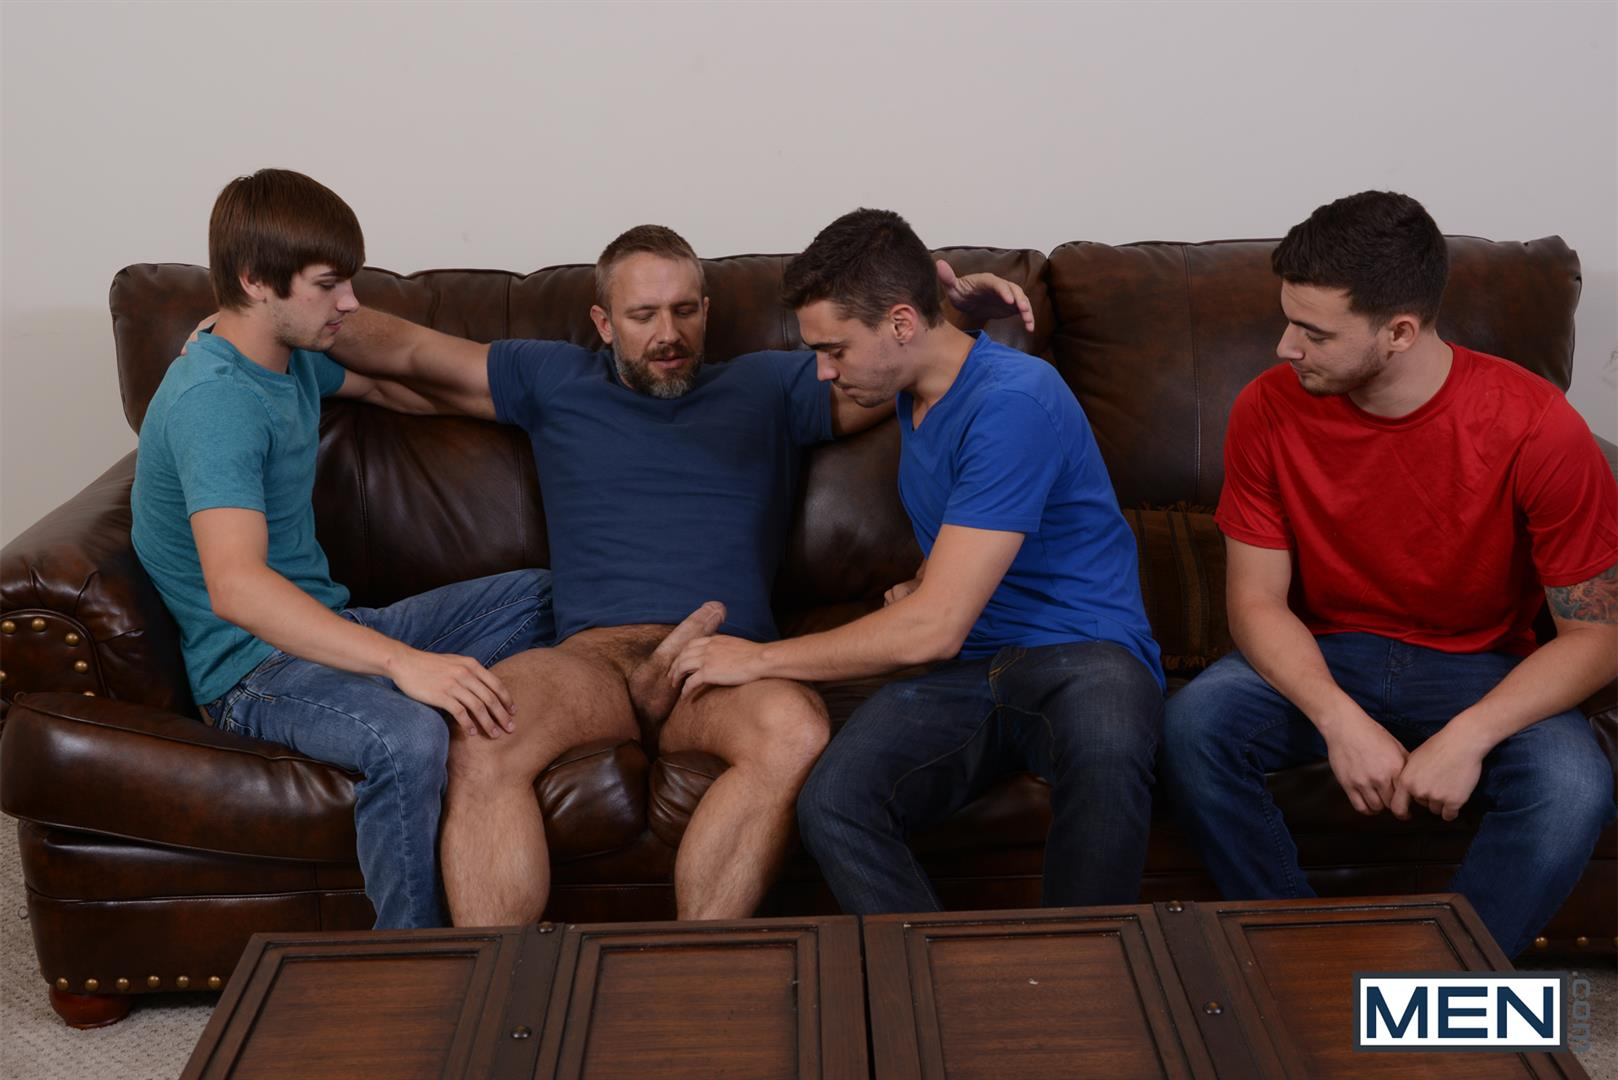 Men Jizz Orgy Asher Hawk and Dirk Caber and Johnny Rapid and Trevor Spade Triple Penetrated In the Ass Amateur Gay Porn 03 Stepfather Dirk Caber Gets TRIPLE Penetrated By His Stepsons